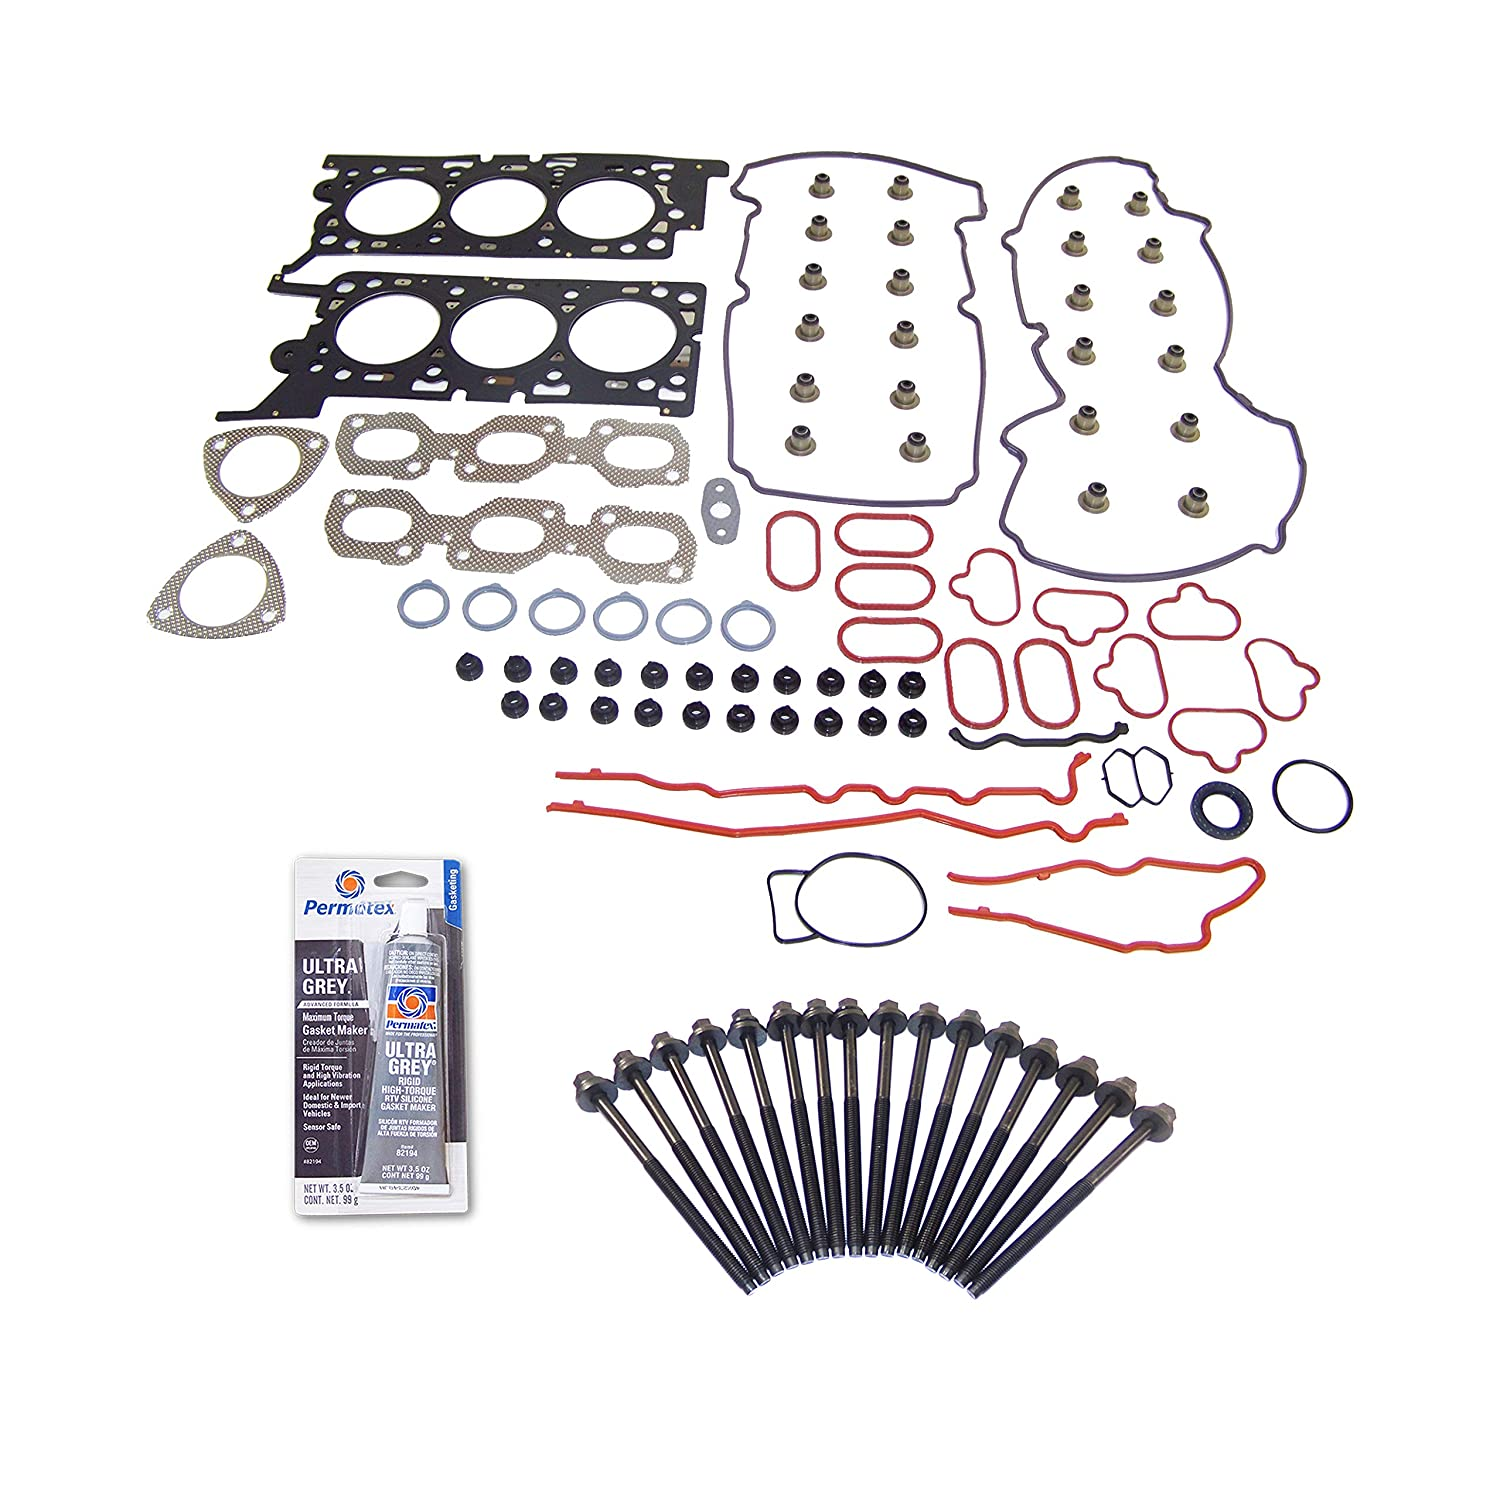 05-06 Ford Escape Mercury Mariner 3.0L V6 24v DURATEC VIN 1 Head Gasket Set Bolt Kit Fits